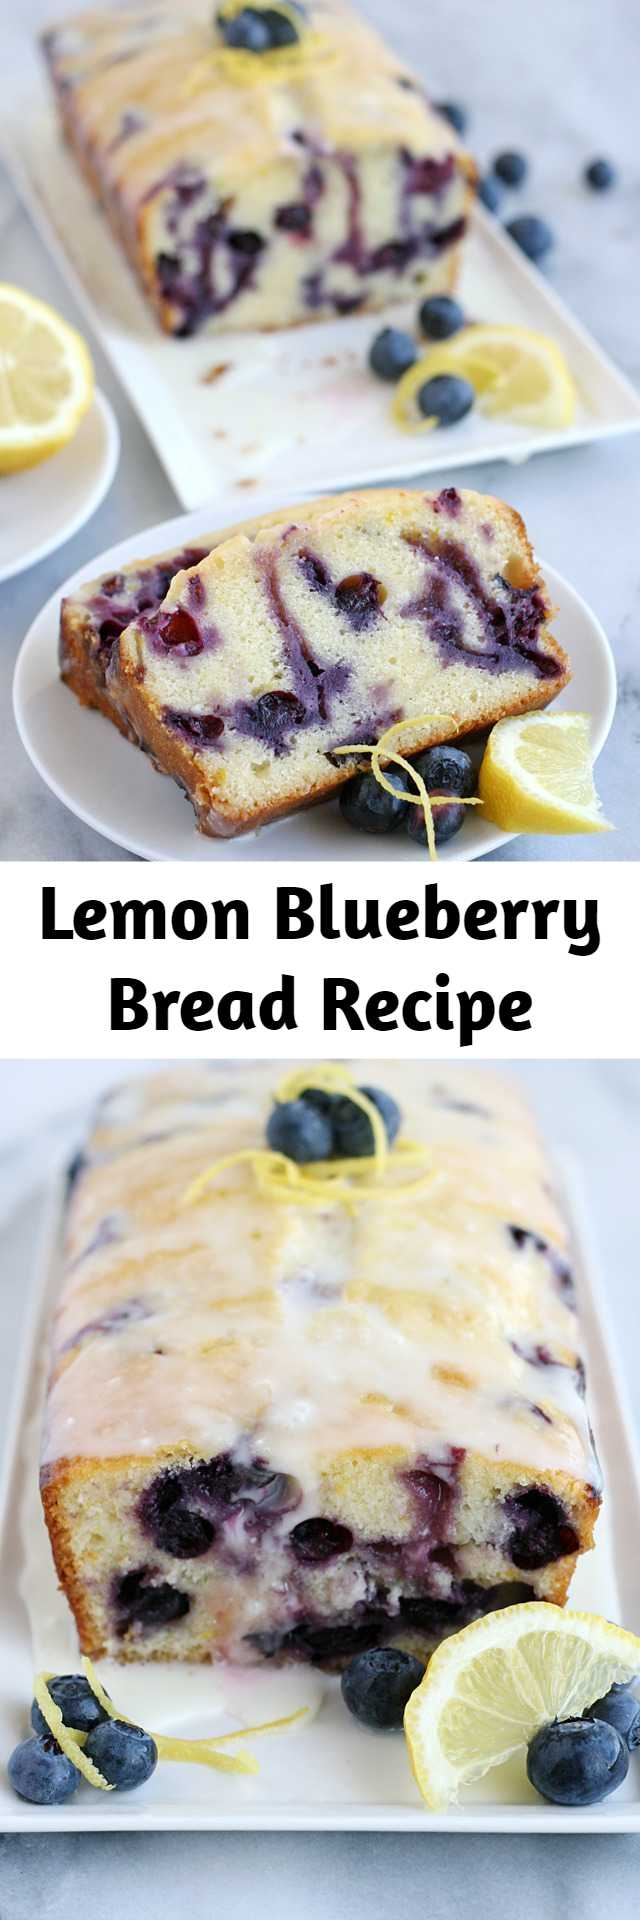 Lemon Blueberry Bread Recipe - This Lemon Blueberry Bread is a delicious, flavorful quick bread perfect to enjoy along with a cup of coffee or tea. It's moist, fluffy, sweet and flavorful! I love the bright flavors of blueberry and lemon, and they work together so beautifully in this simple loaf. I know I'll be making this recipe again and again!